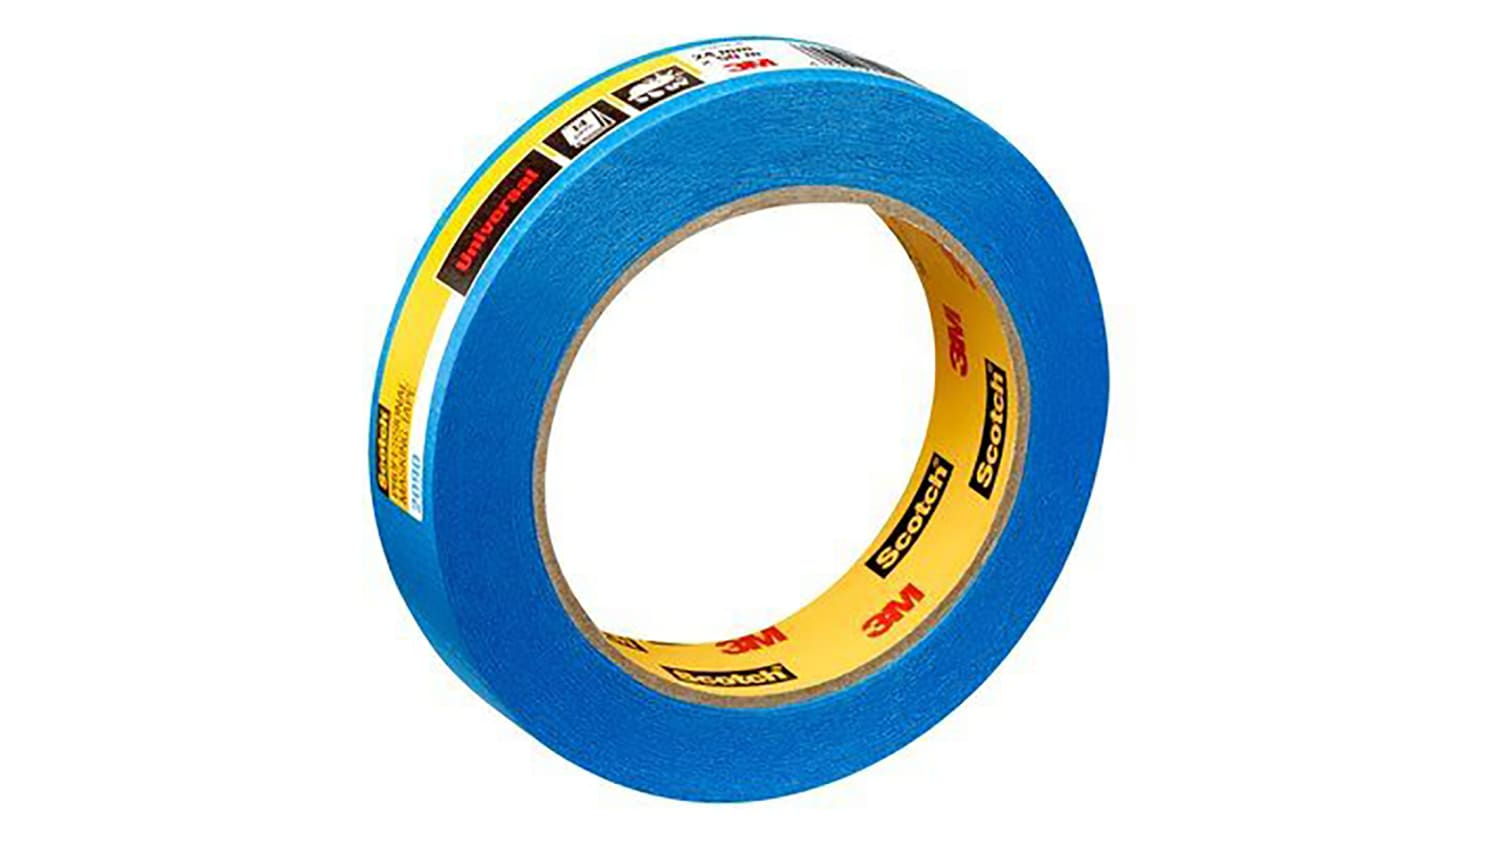 209019 3m Scotch 2090 Blue Masking Tape 18mm X 55m Rs Components